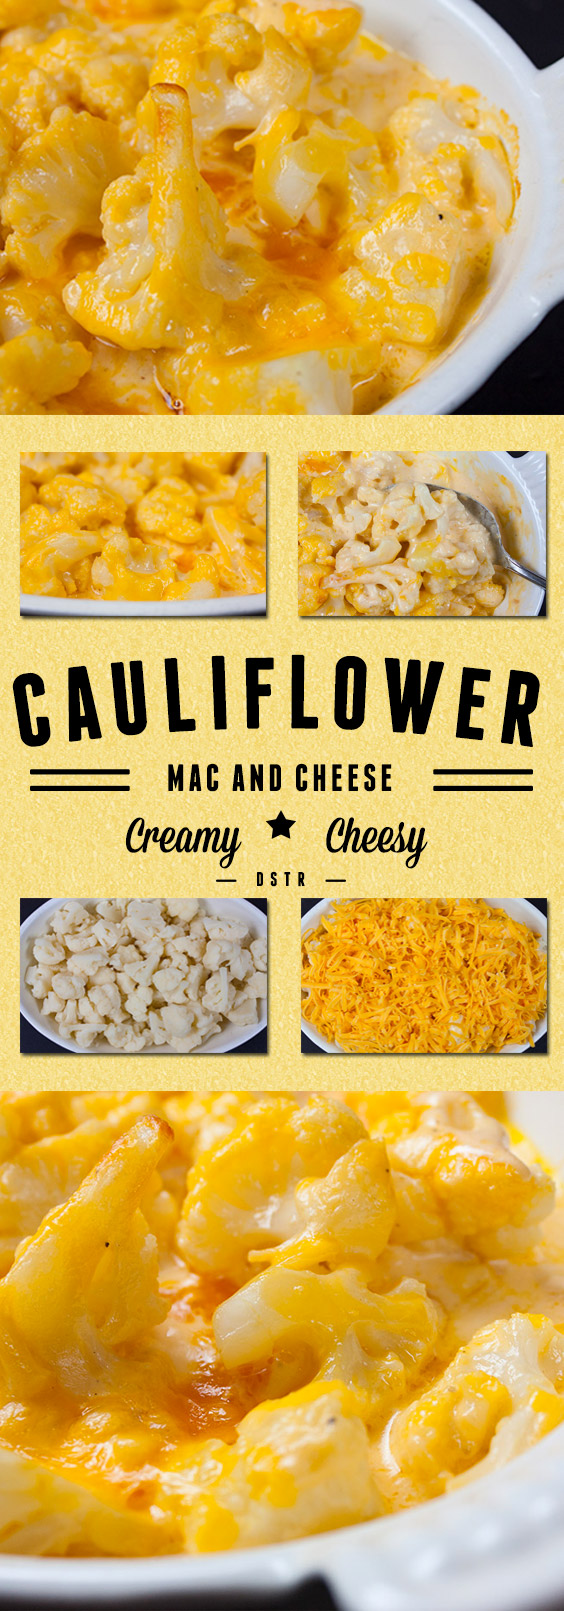 Cauliflower Mac and Cheese - Low carb, keto, creamy, cheesy and decadent! You don't need the pasta! #keto #healthy #cauliflower